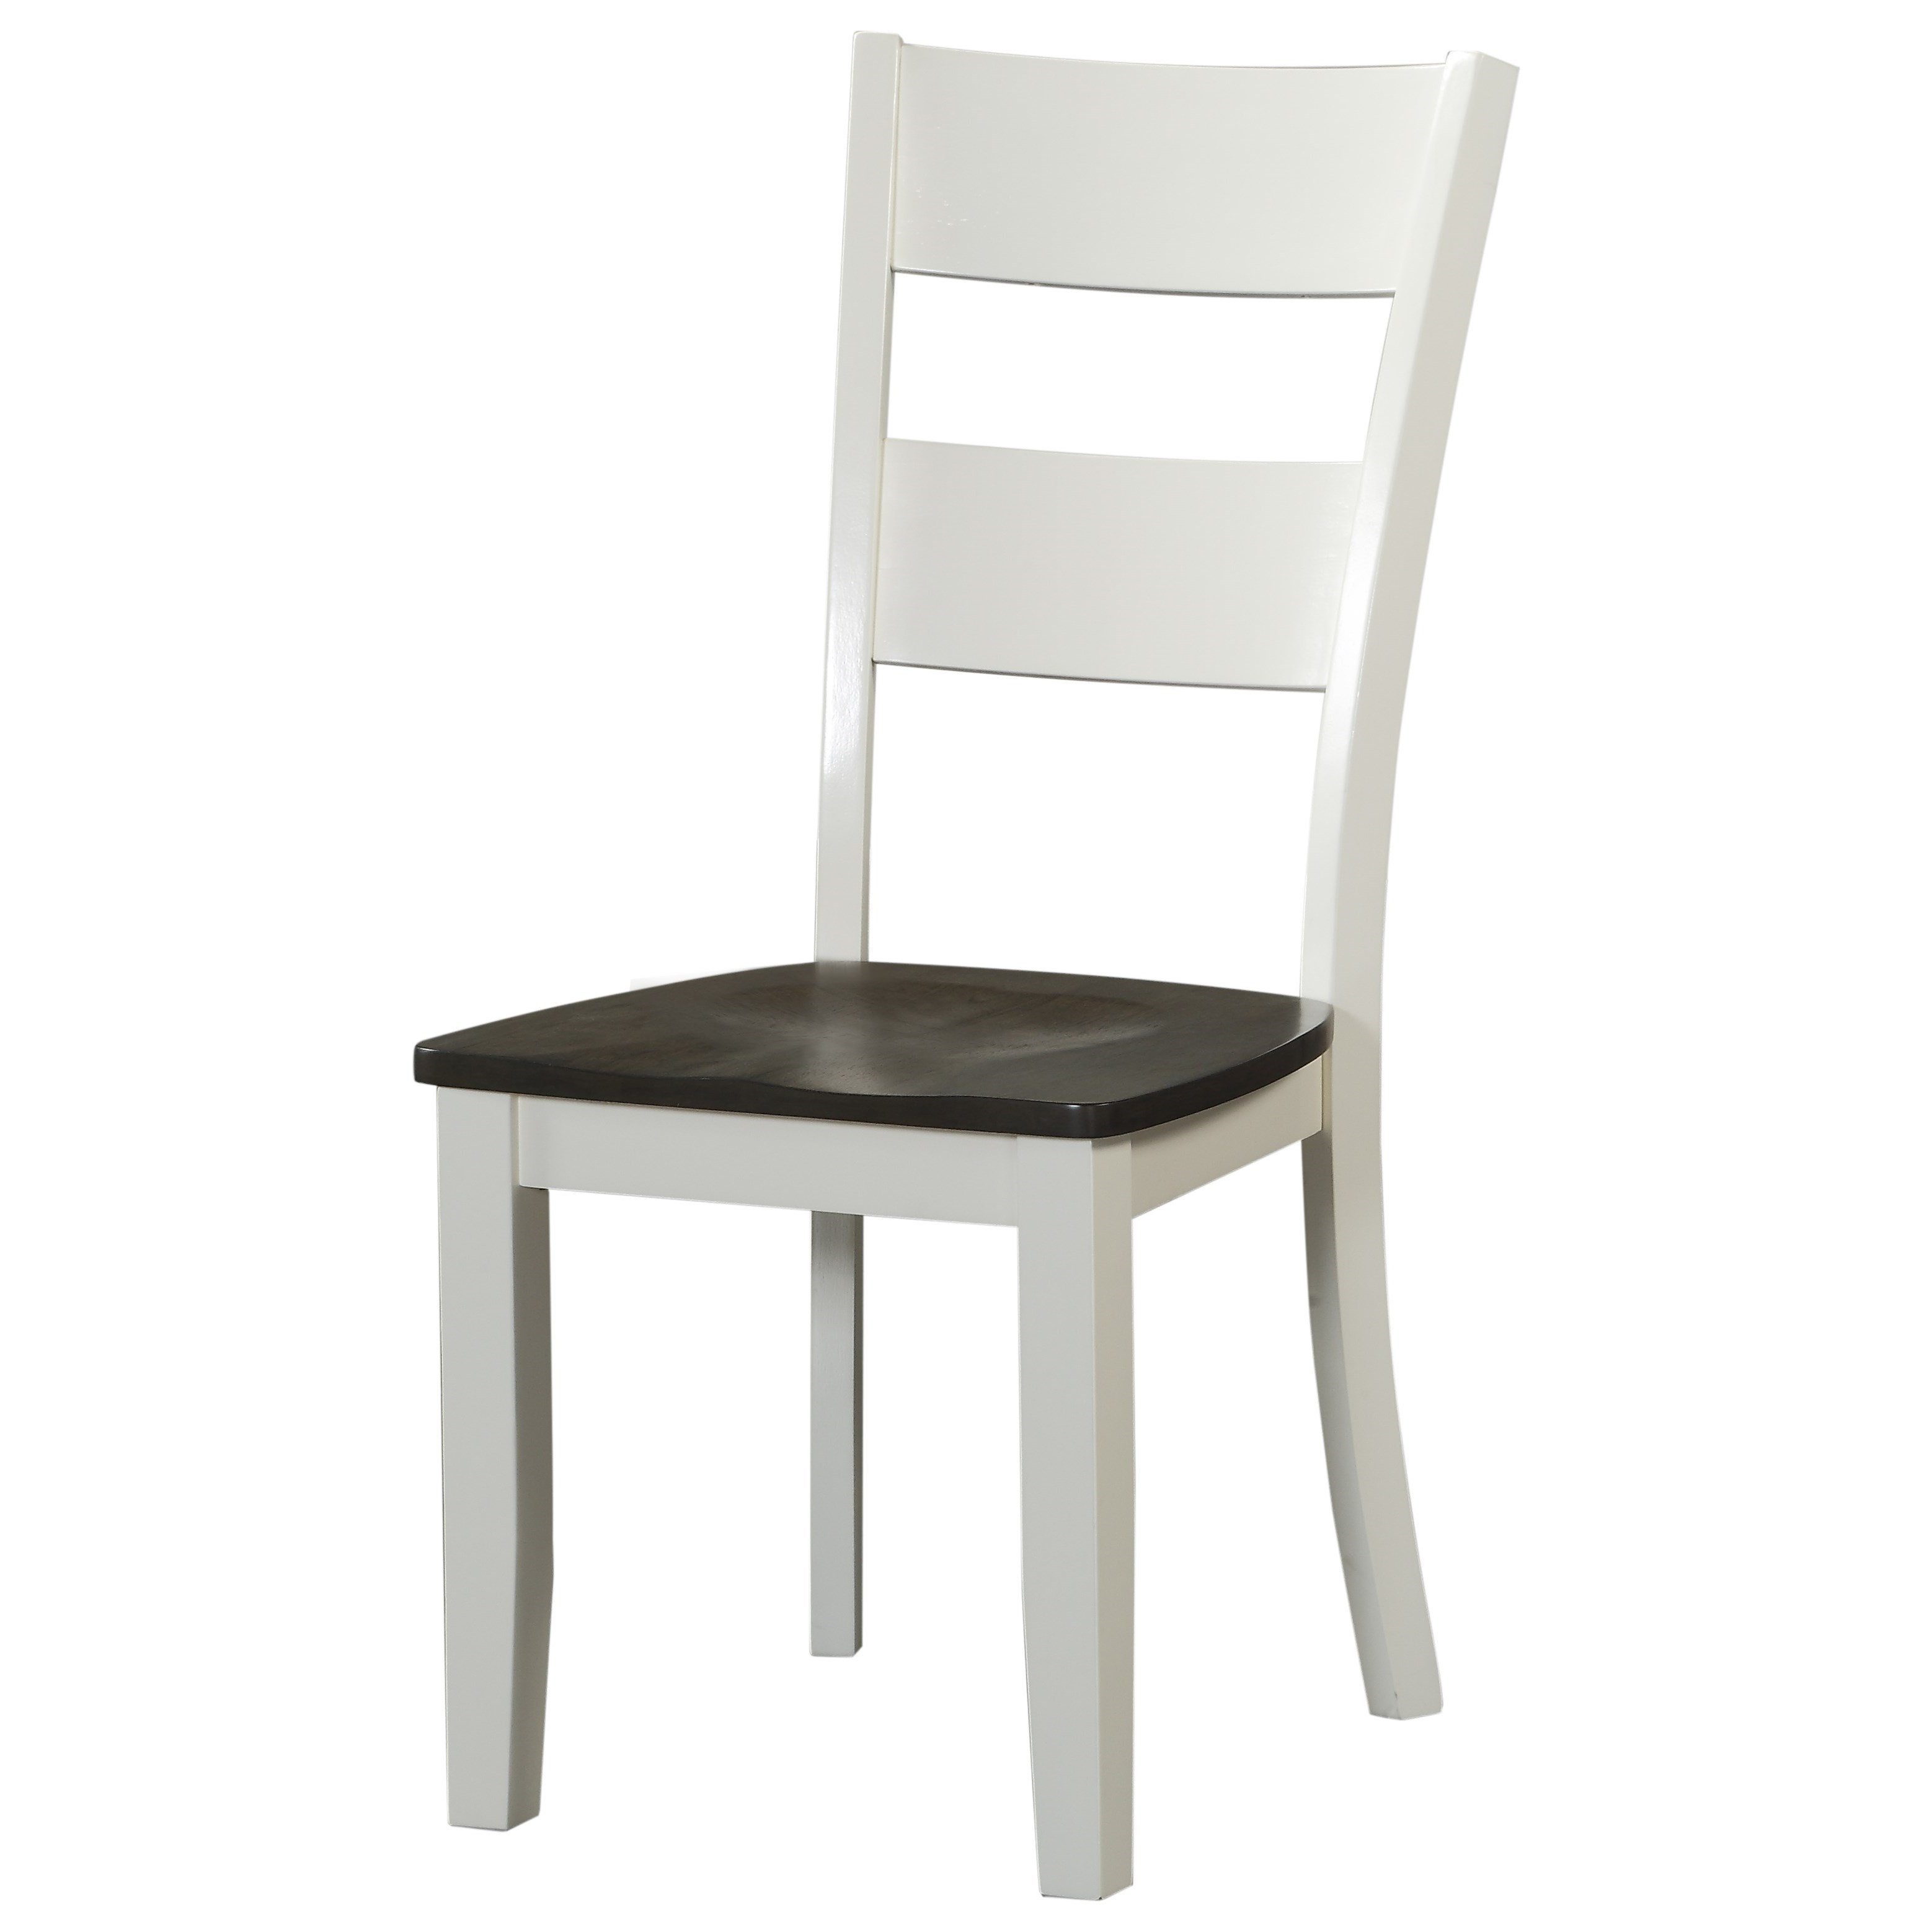 Carey White Ladderback Side Chair by HH at Walker's Furniture